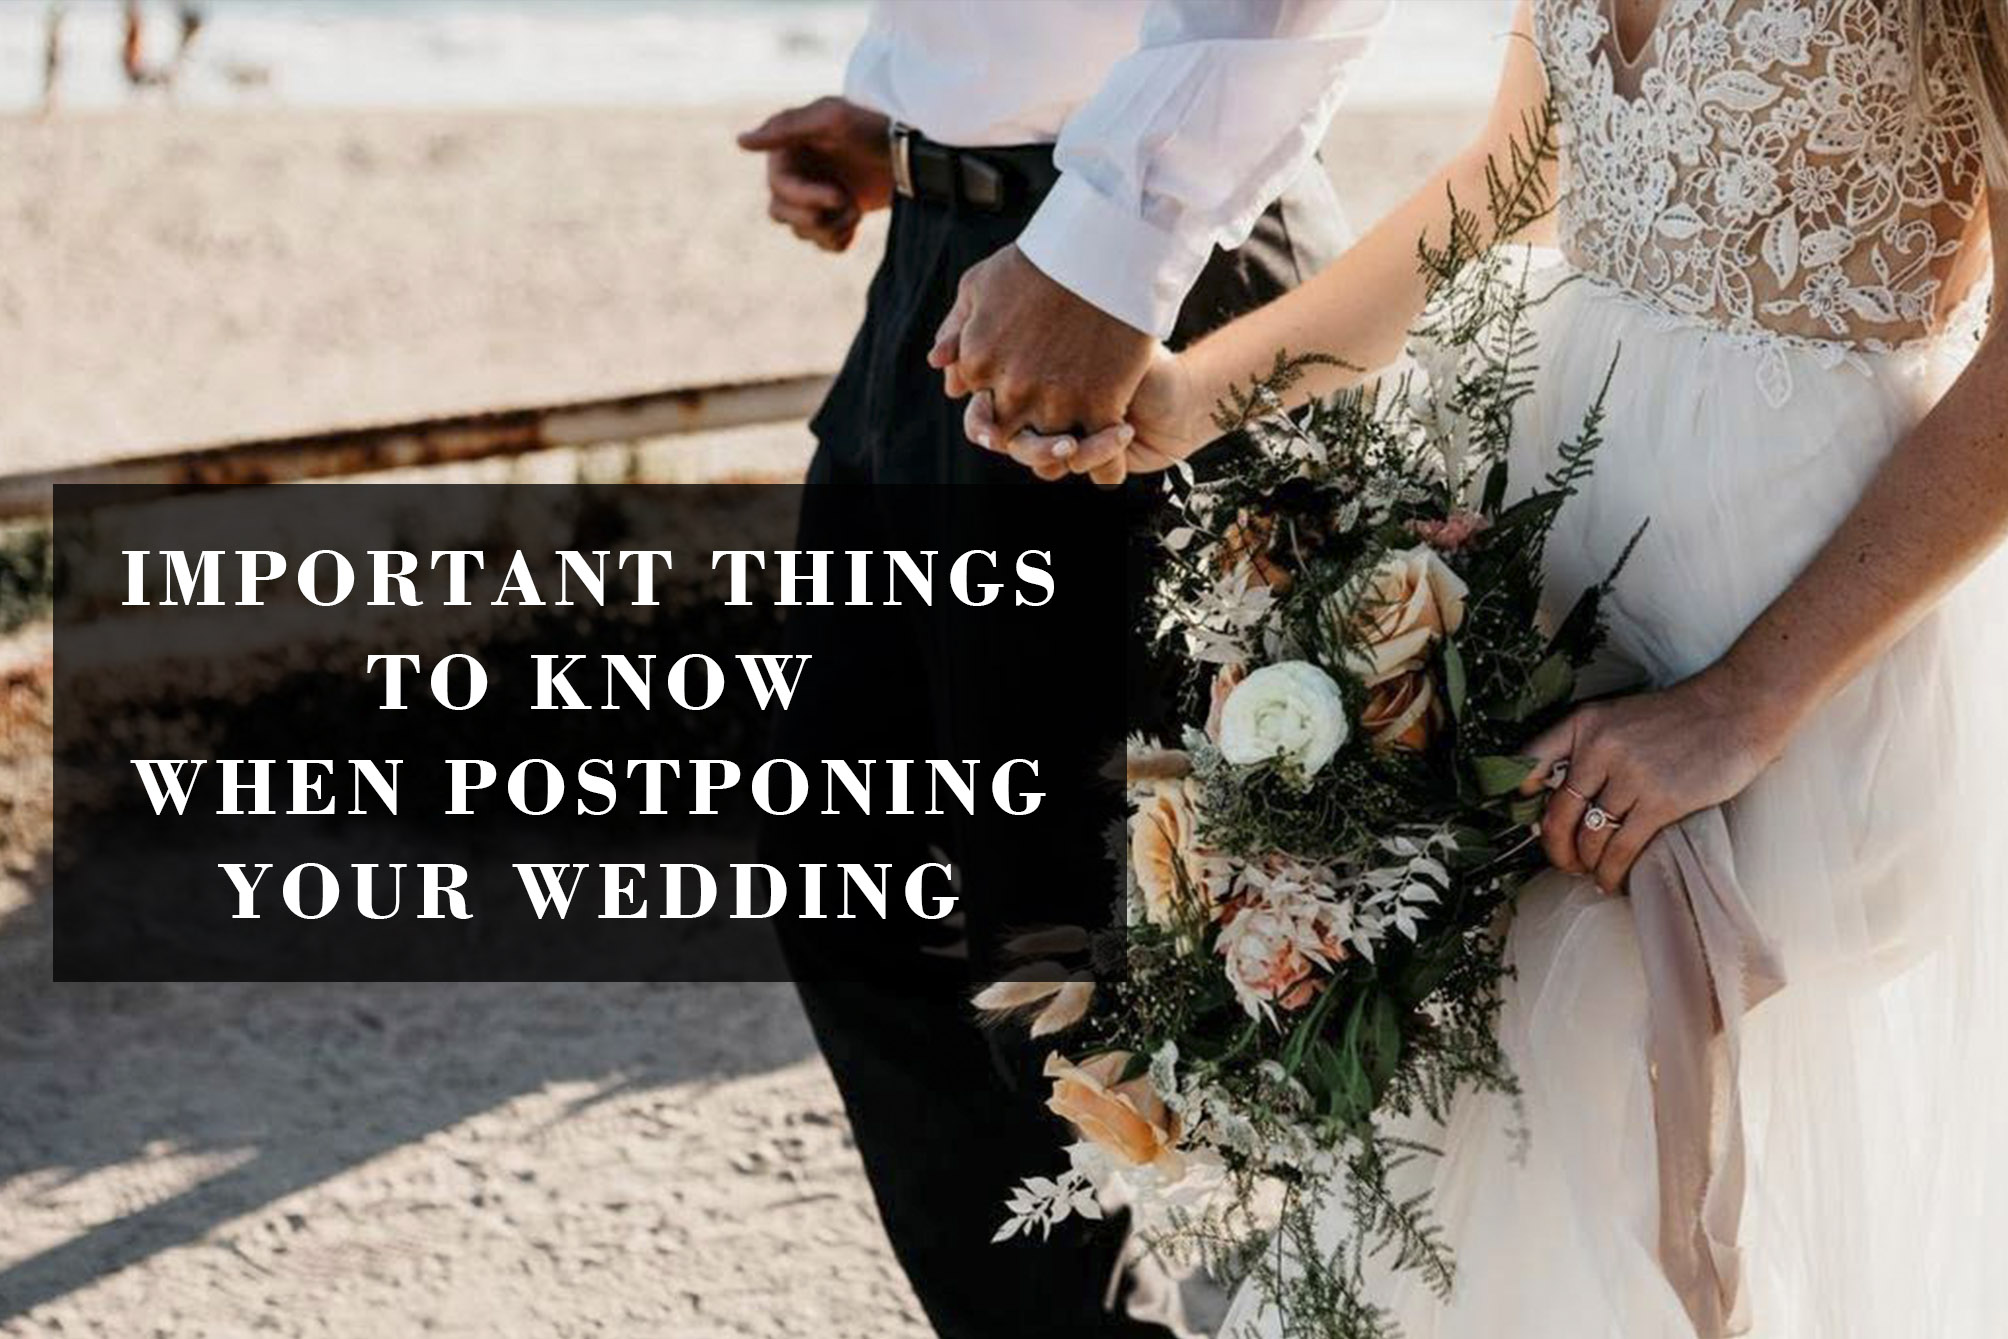 What Should You do When Postponing Your Wedding Amid